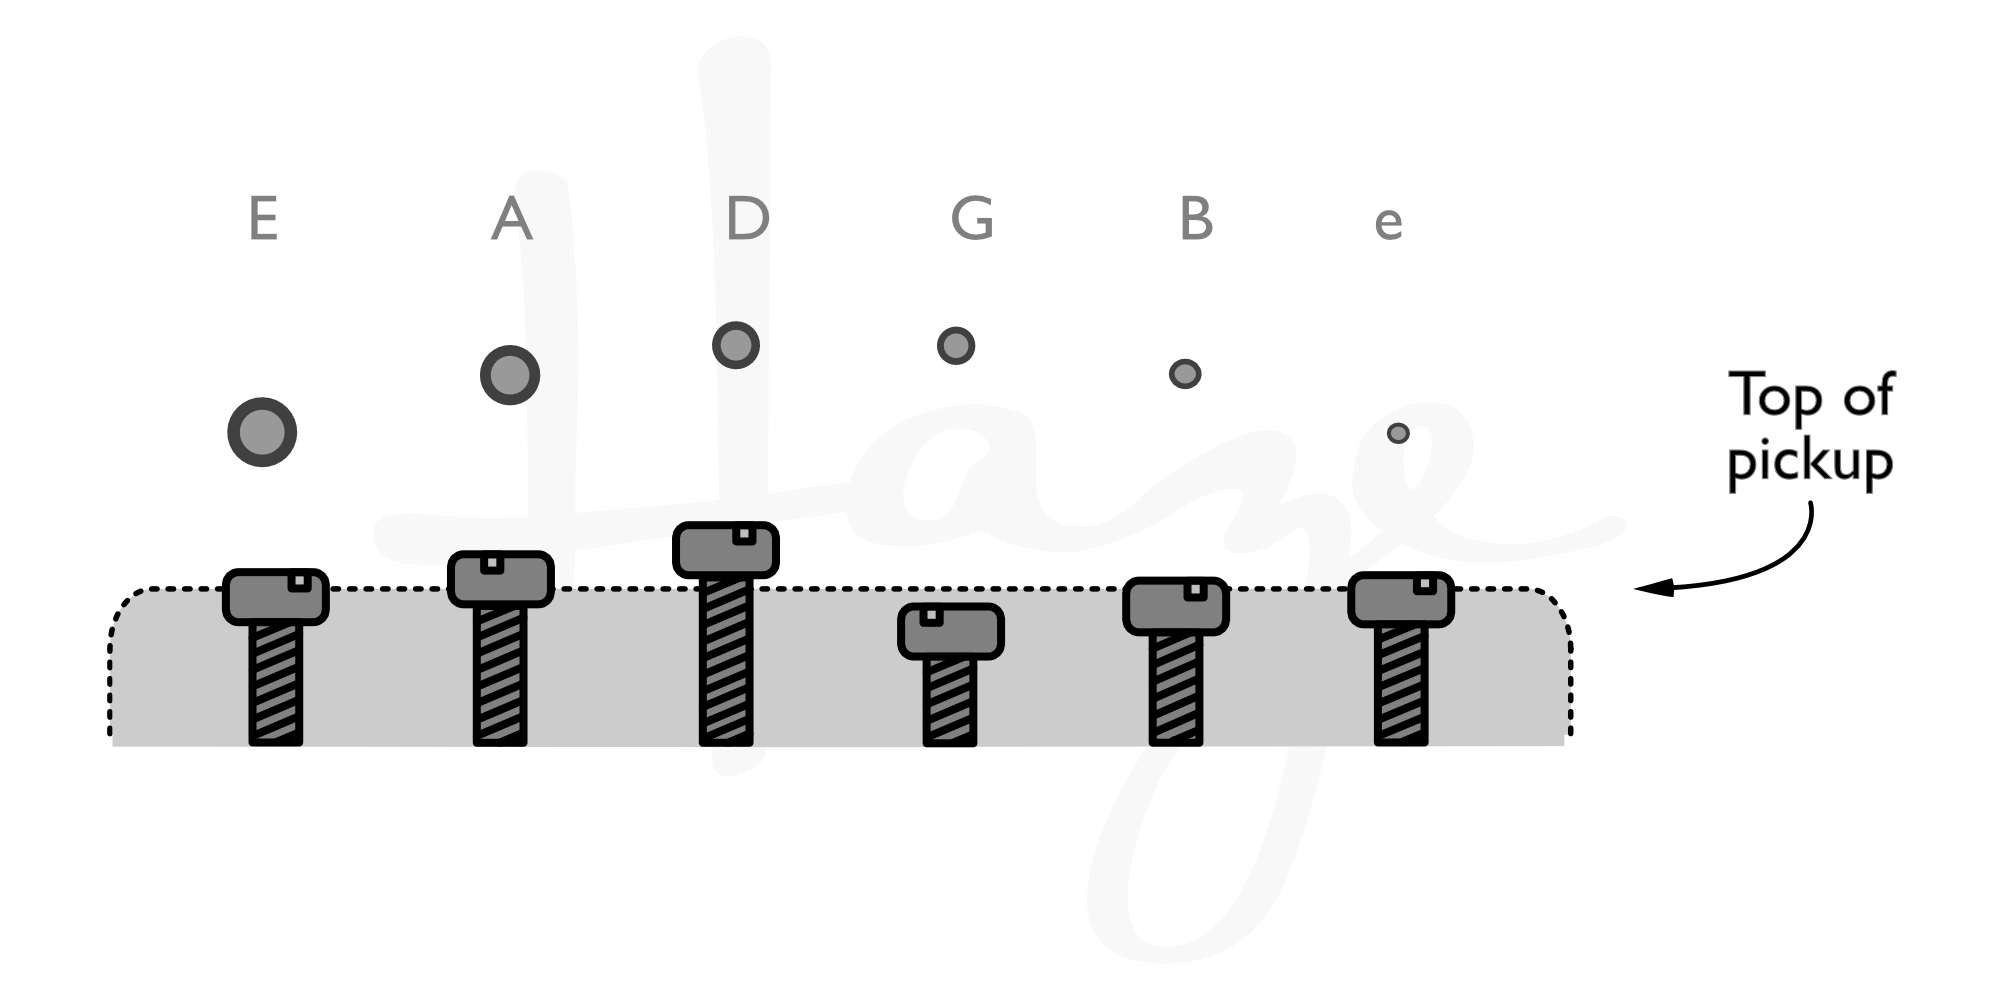 Adjusting pickup screw height for great string-to-string output volume balance